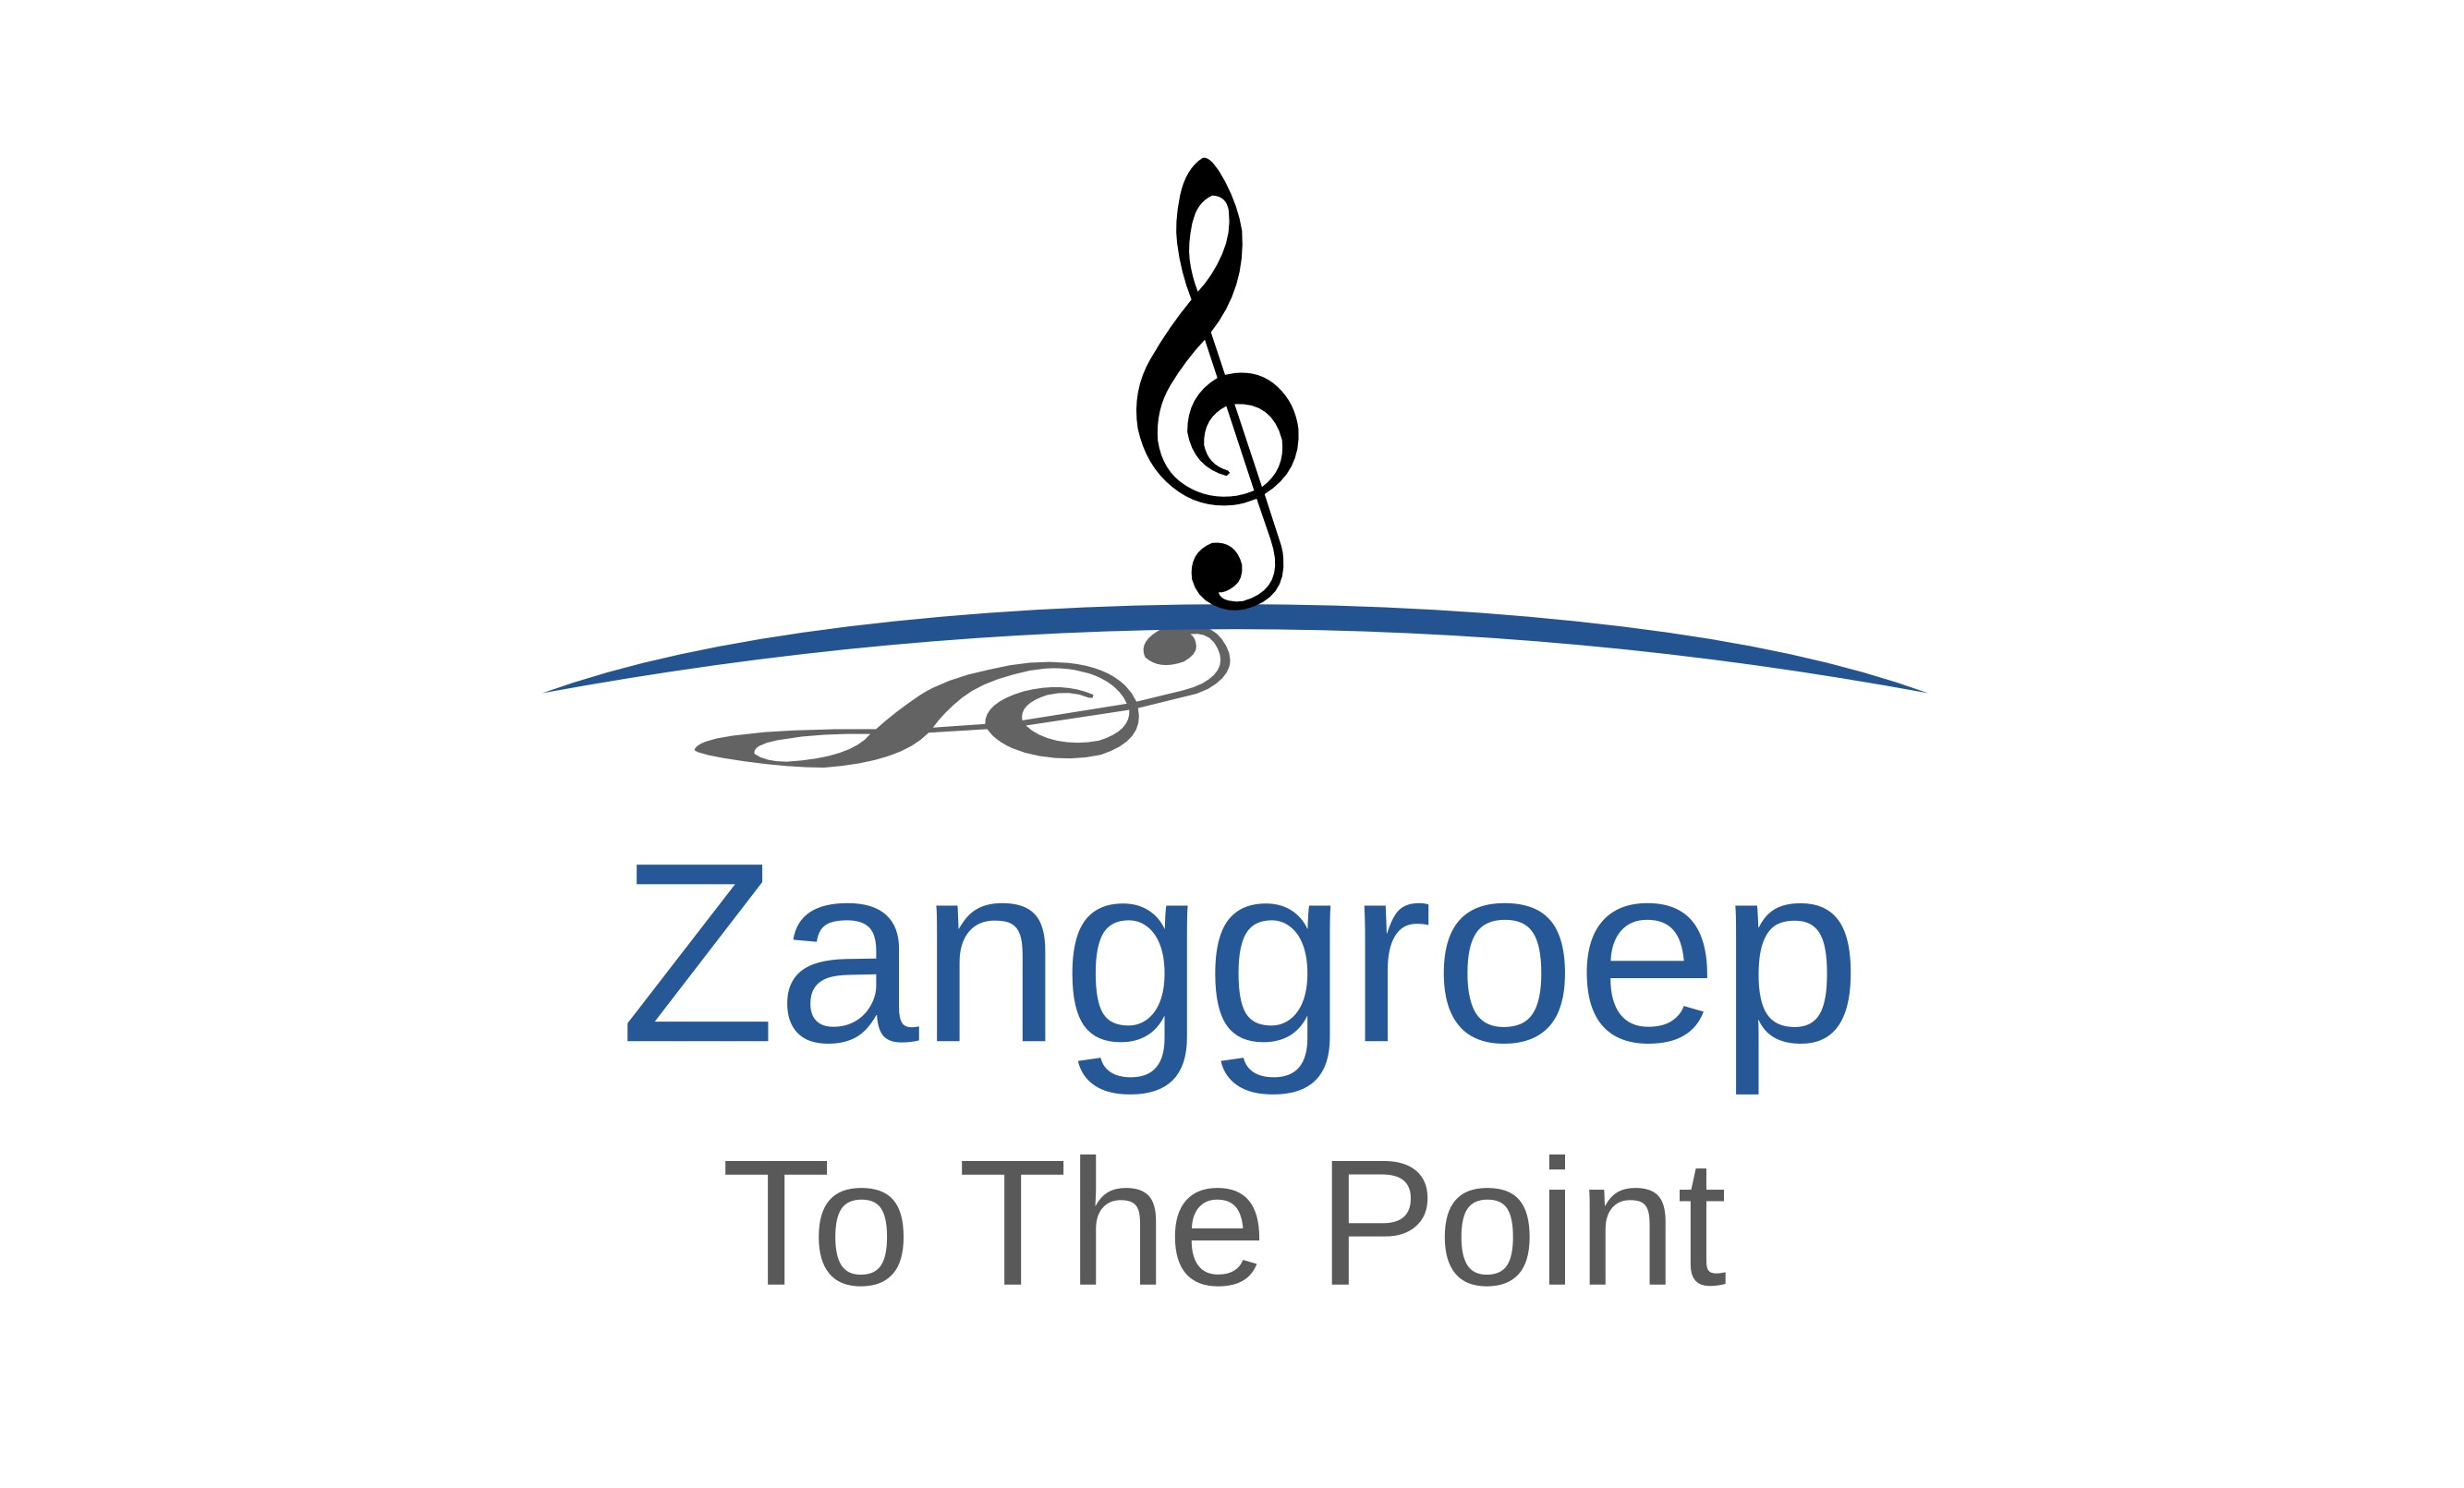 Zanggroep To The Point